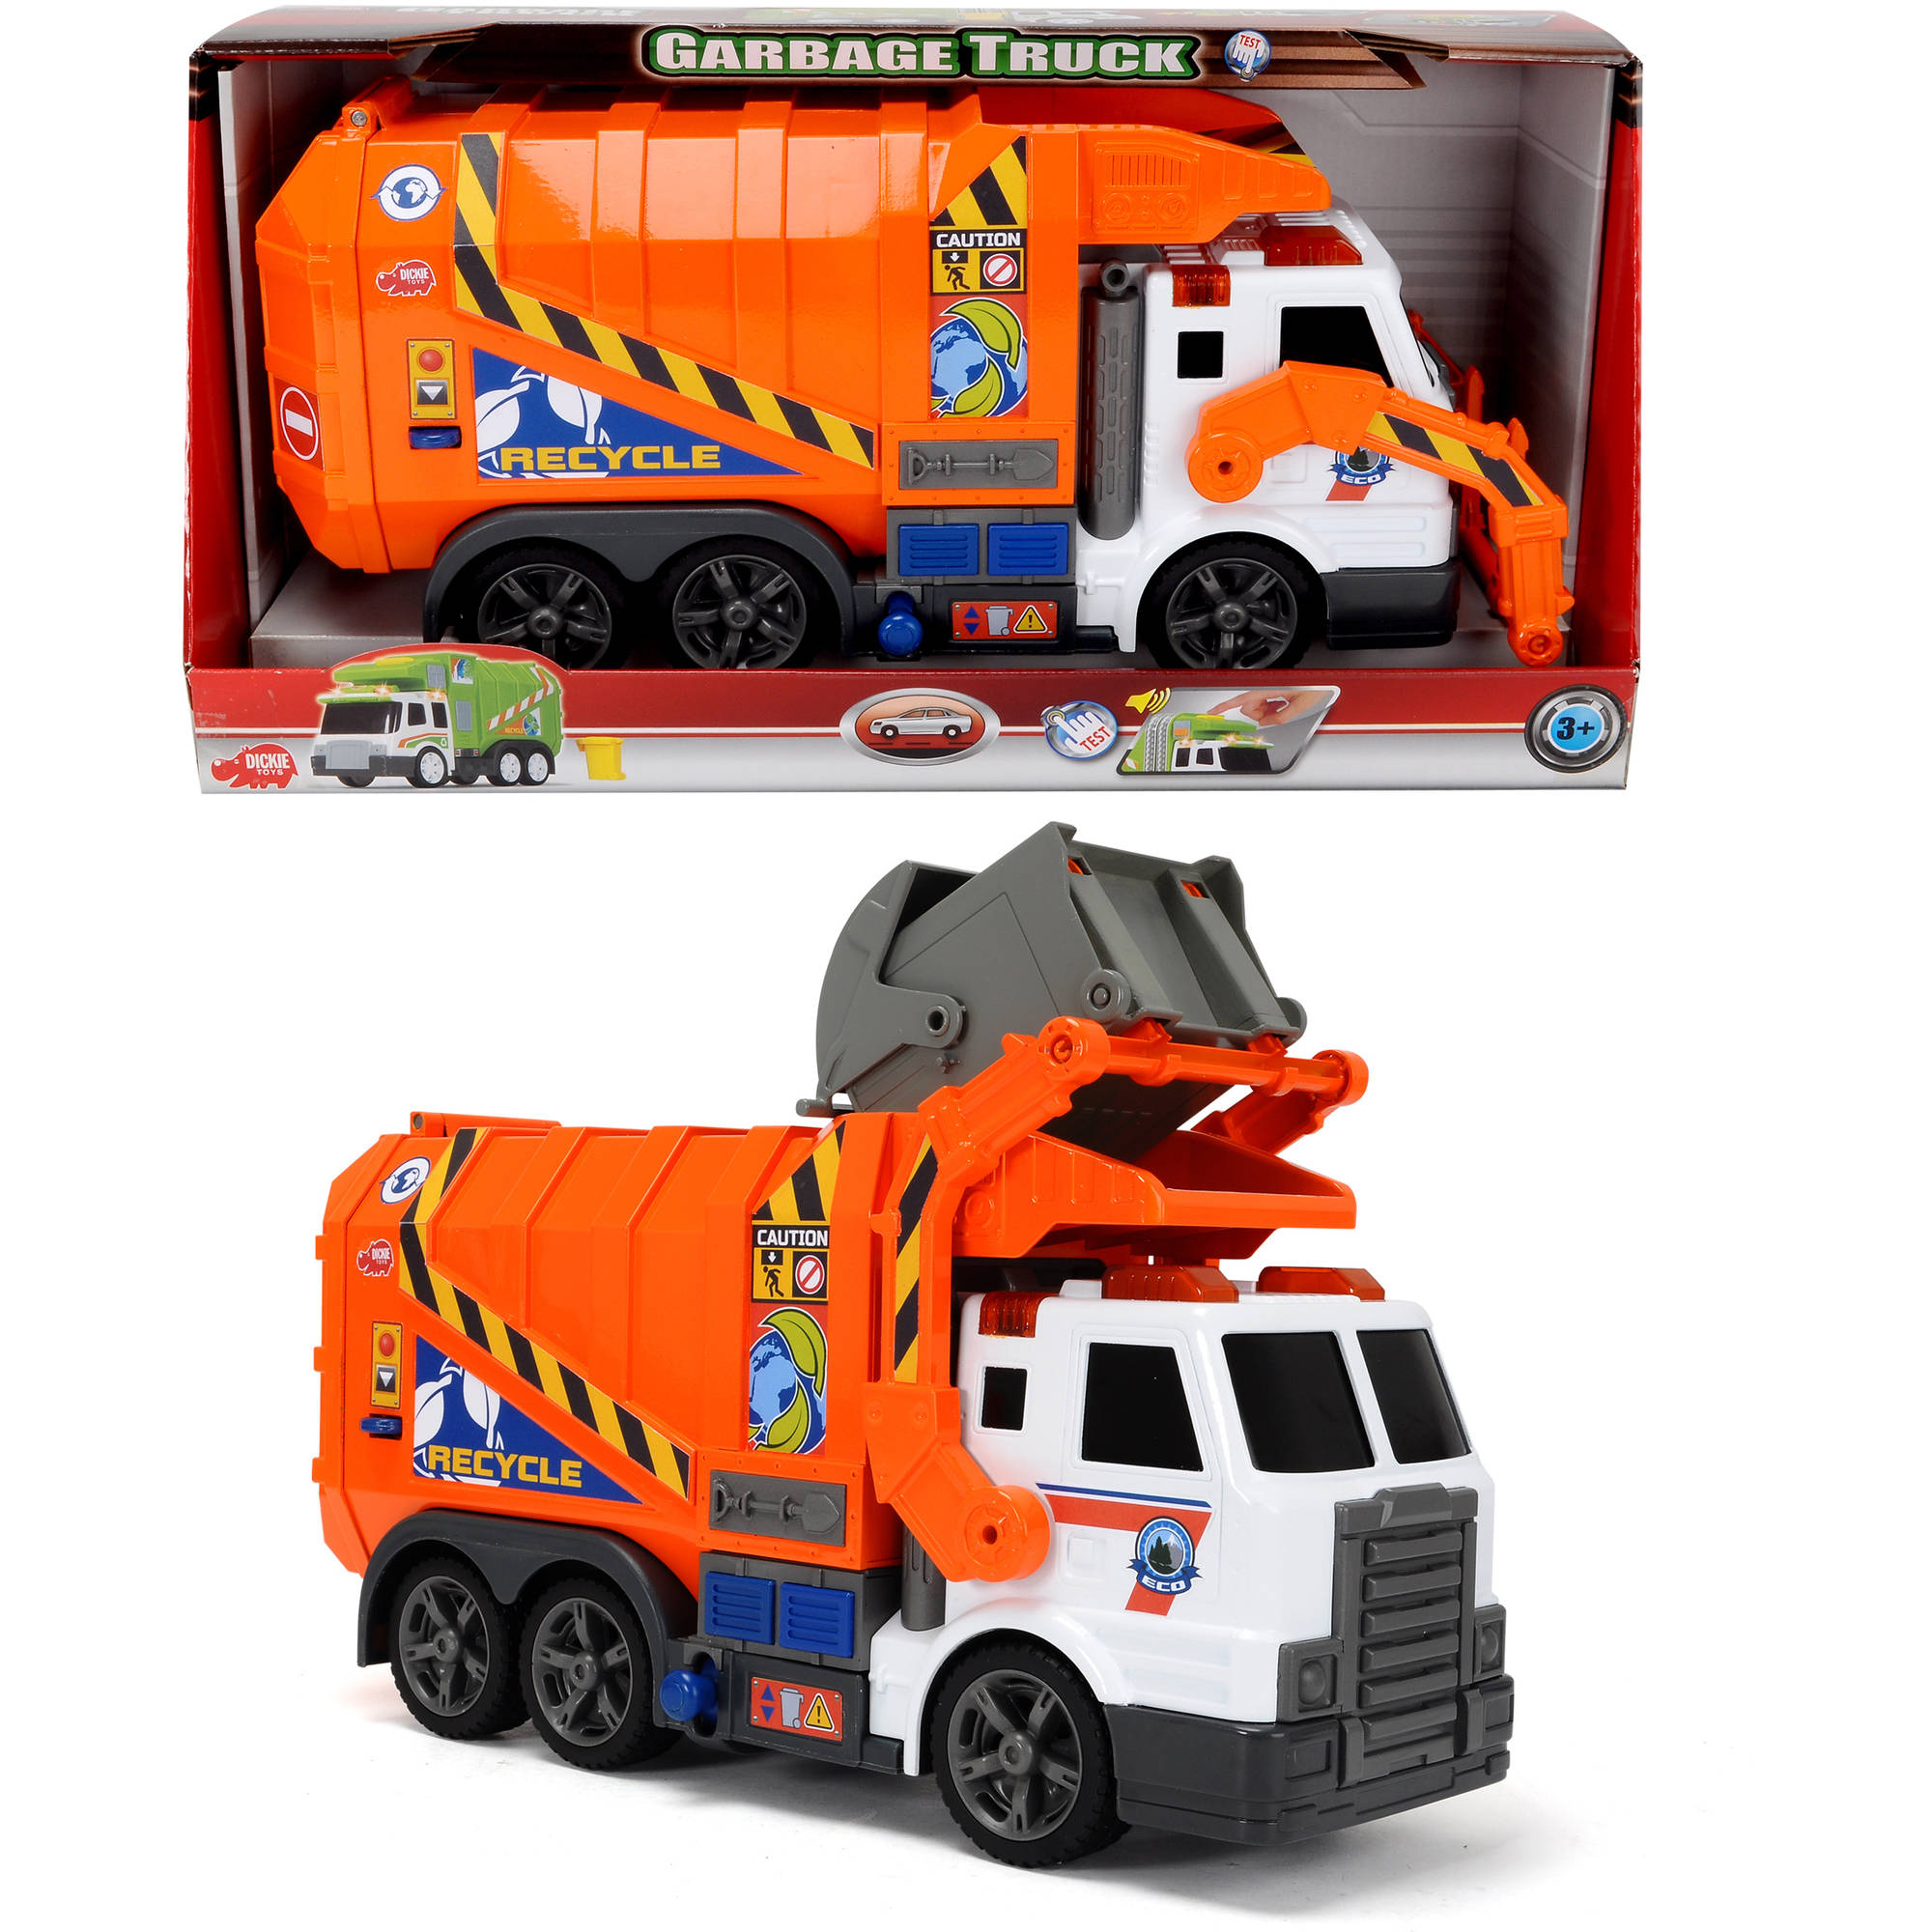 Get ready garbage truck coloring book - Get Ready Garbage Truck Coloring Book 35